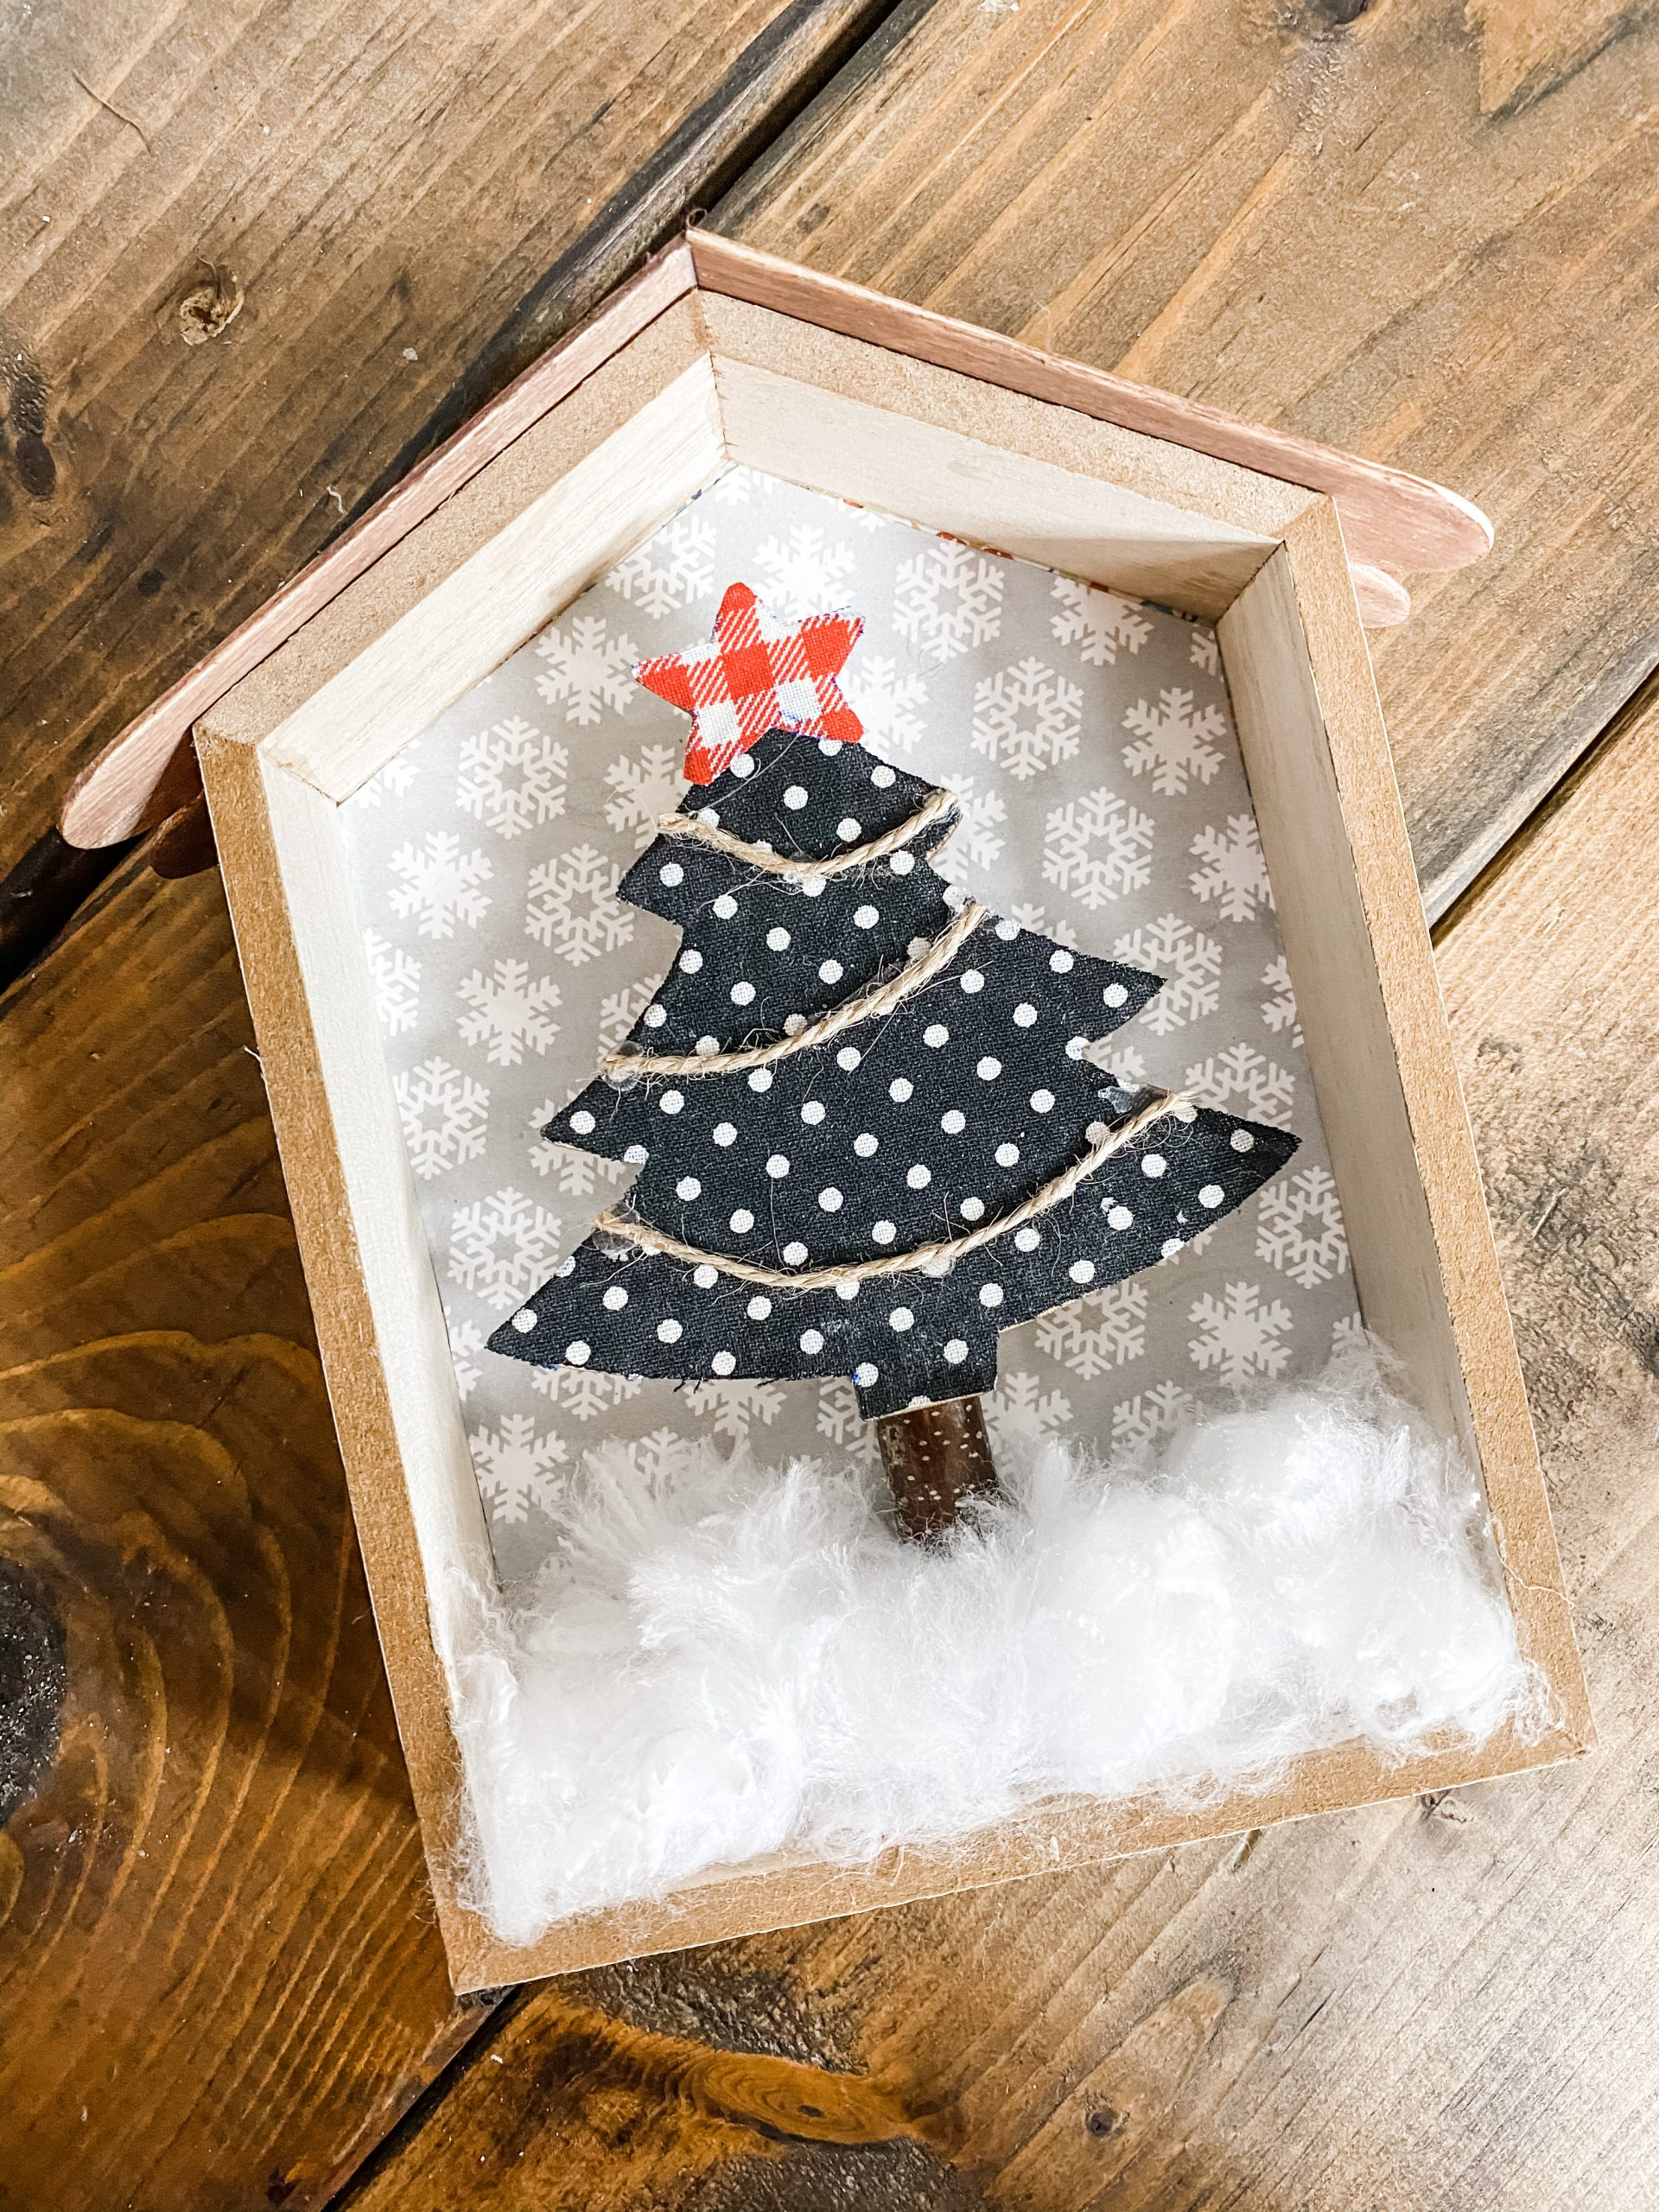 How To Make A Diy Christmas Tree Shelf Decor Easy Diy